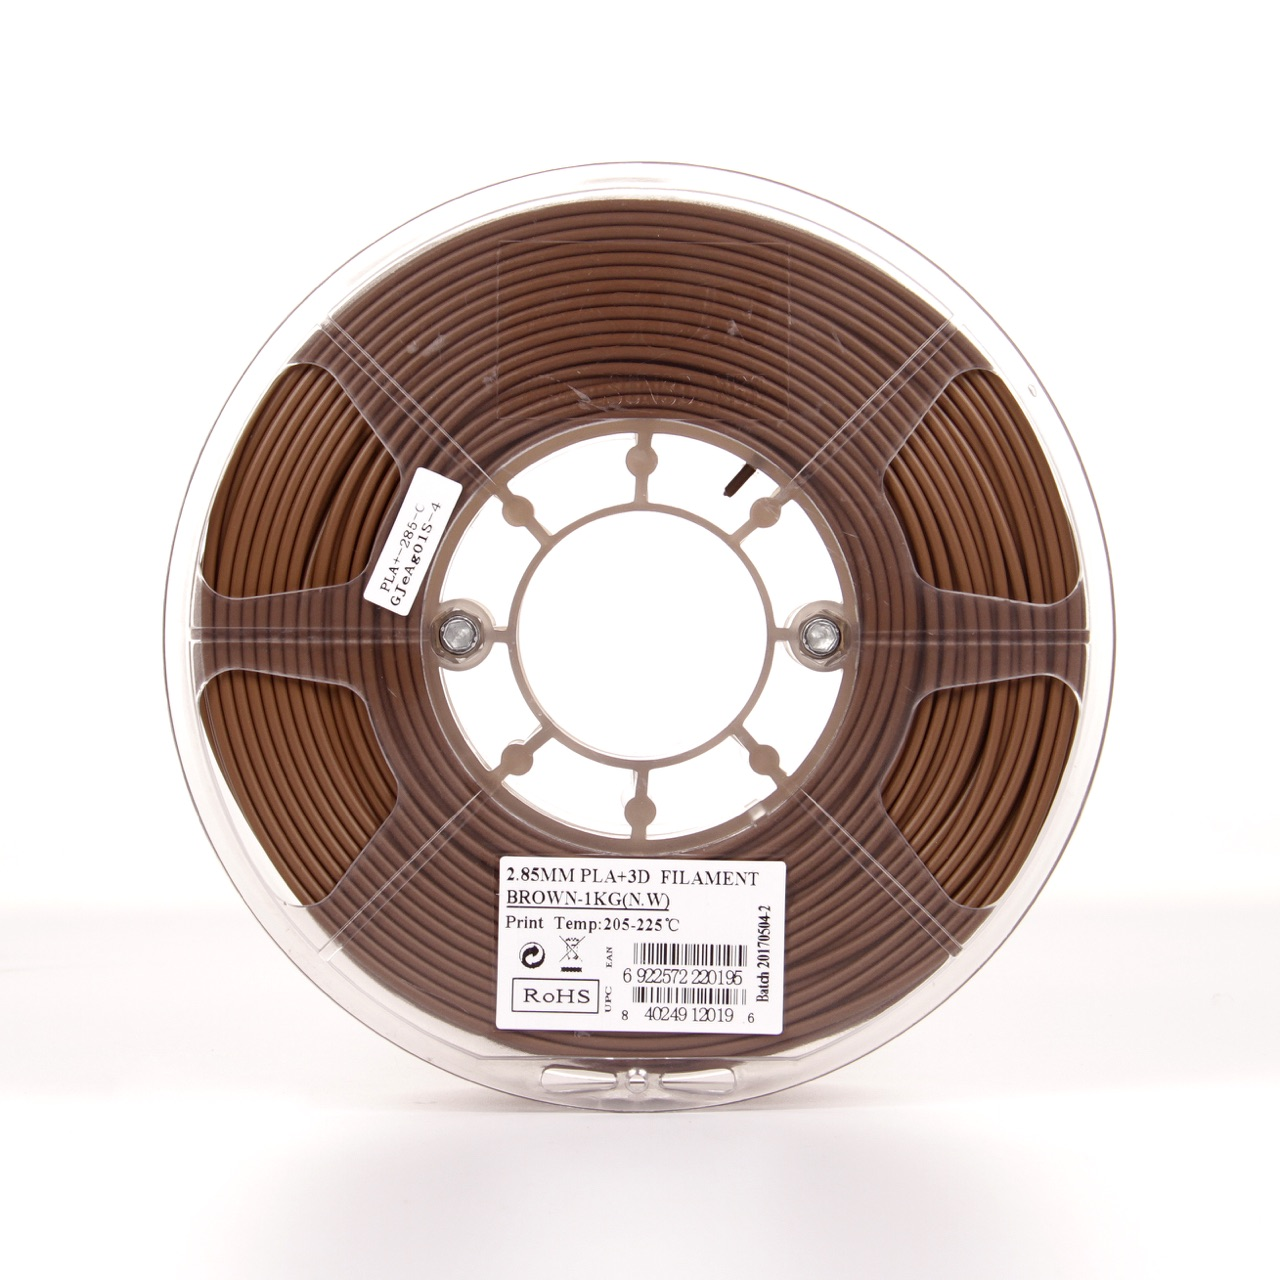 PLA filament, 2.85mm (3.0mm Compatible), Brown, 1kg/spool - MK-PLA300BR